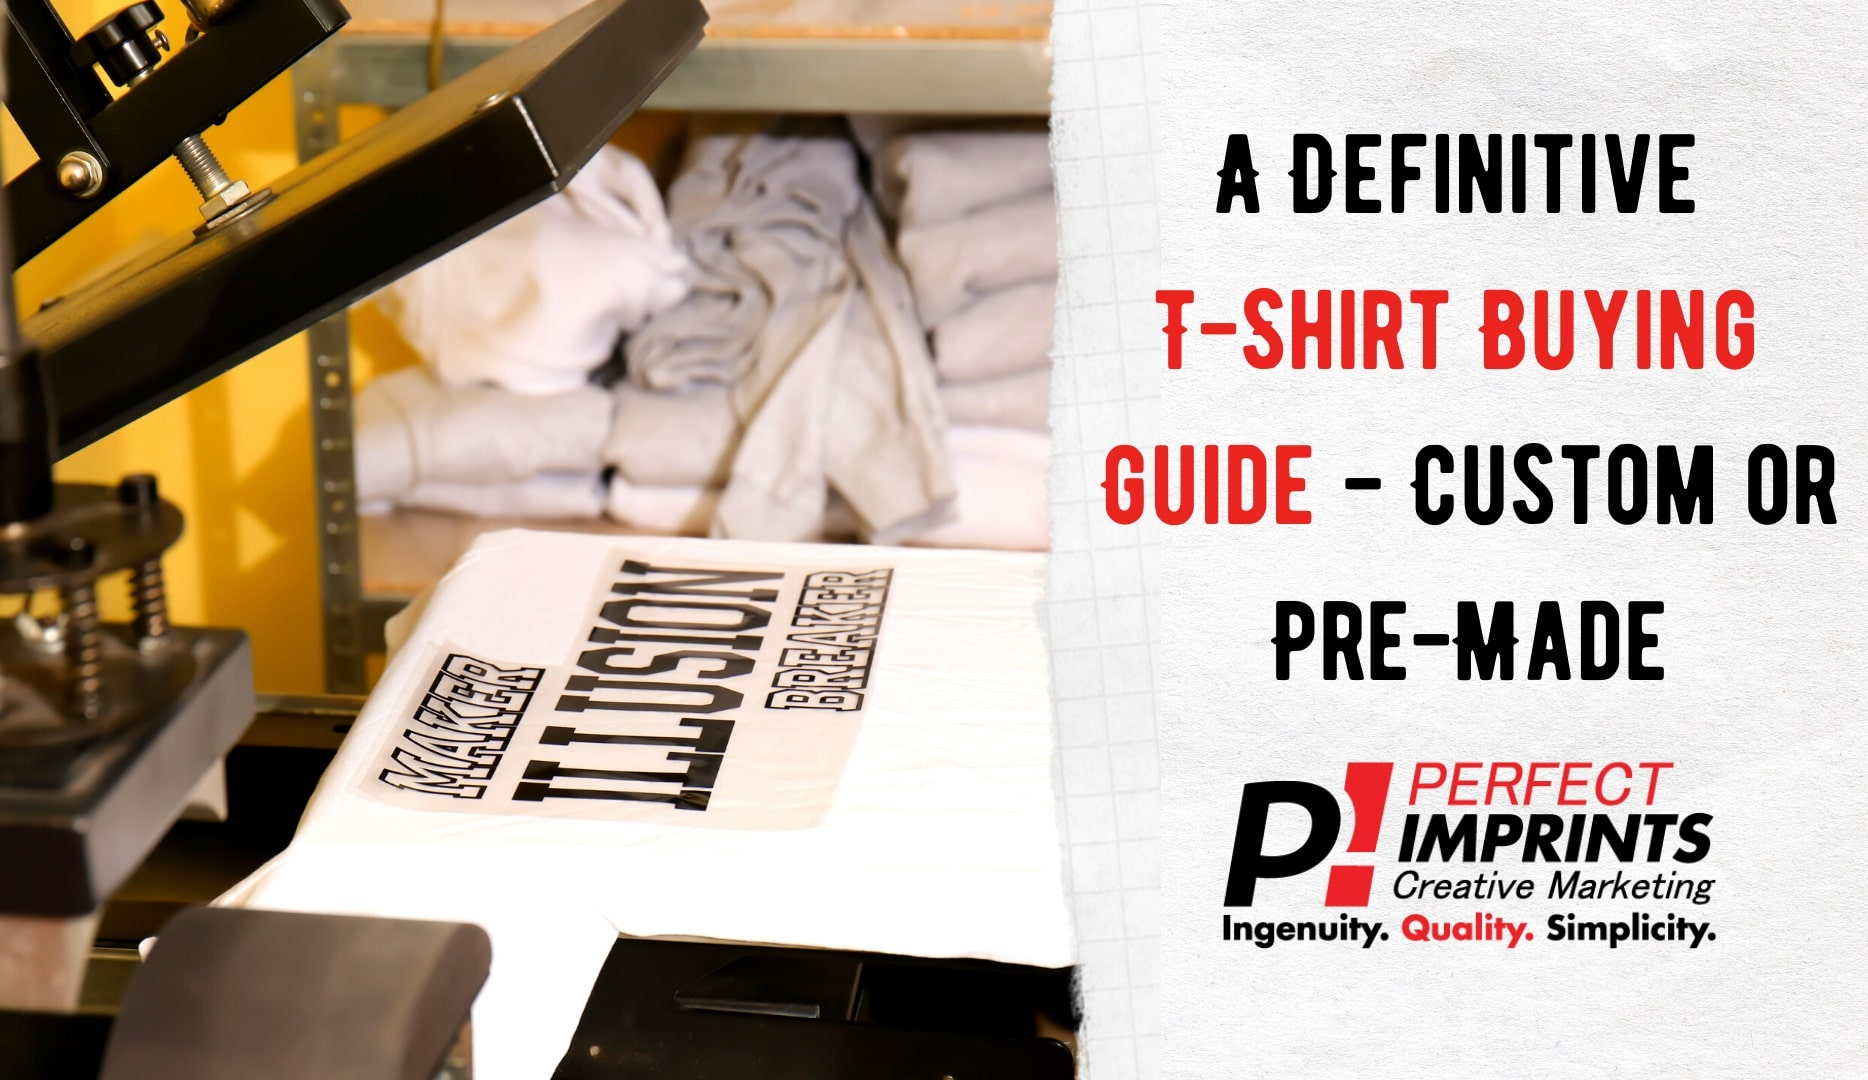 A Definitive T-Shirt Buying Guide – Custom or Pre-Made